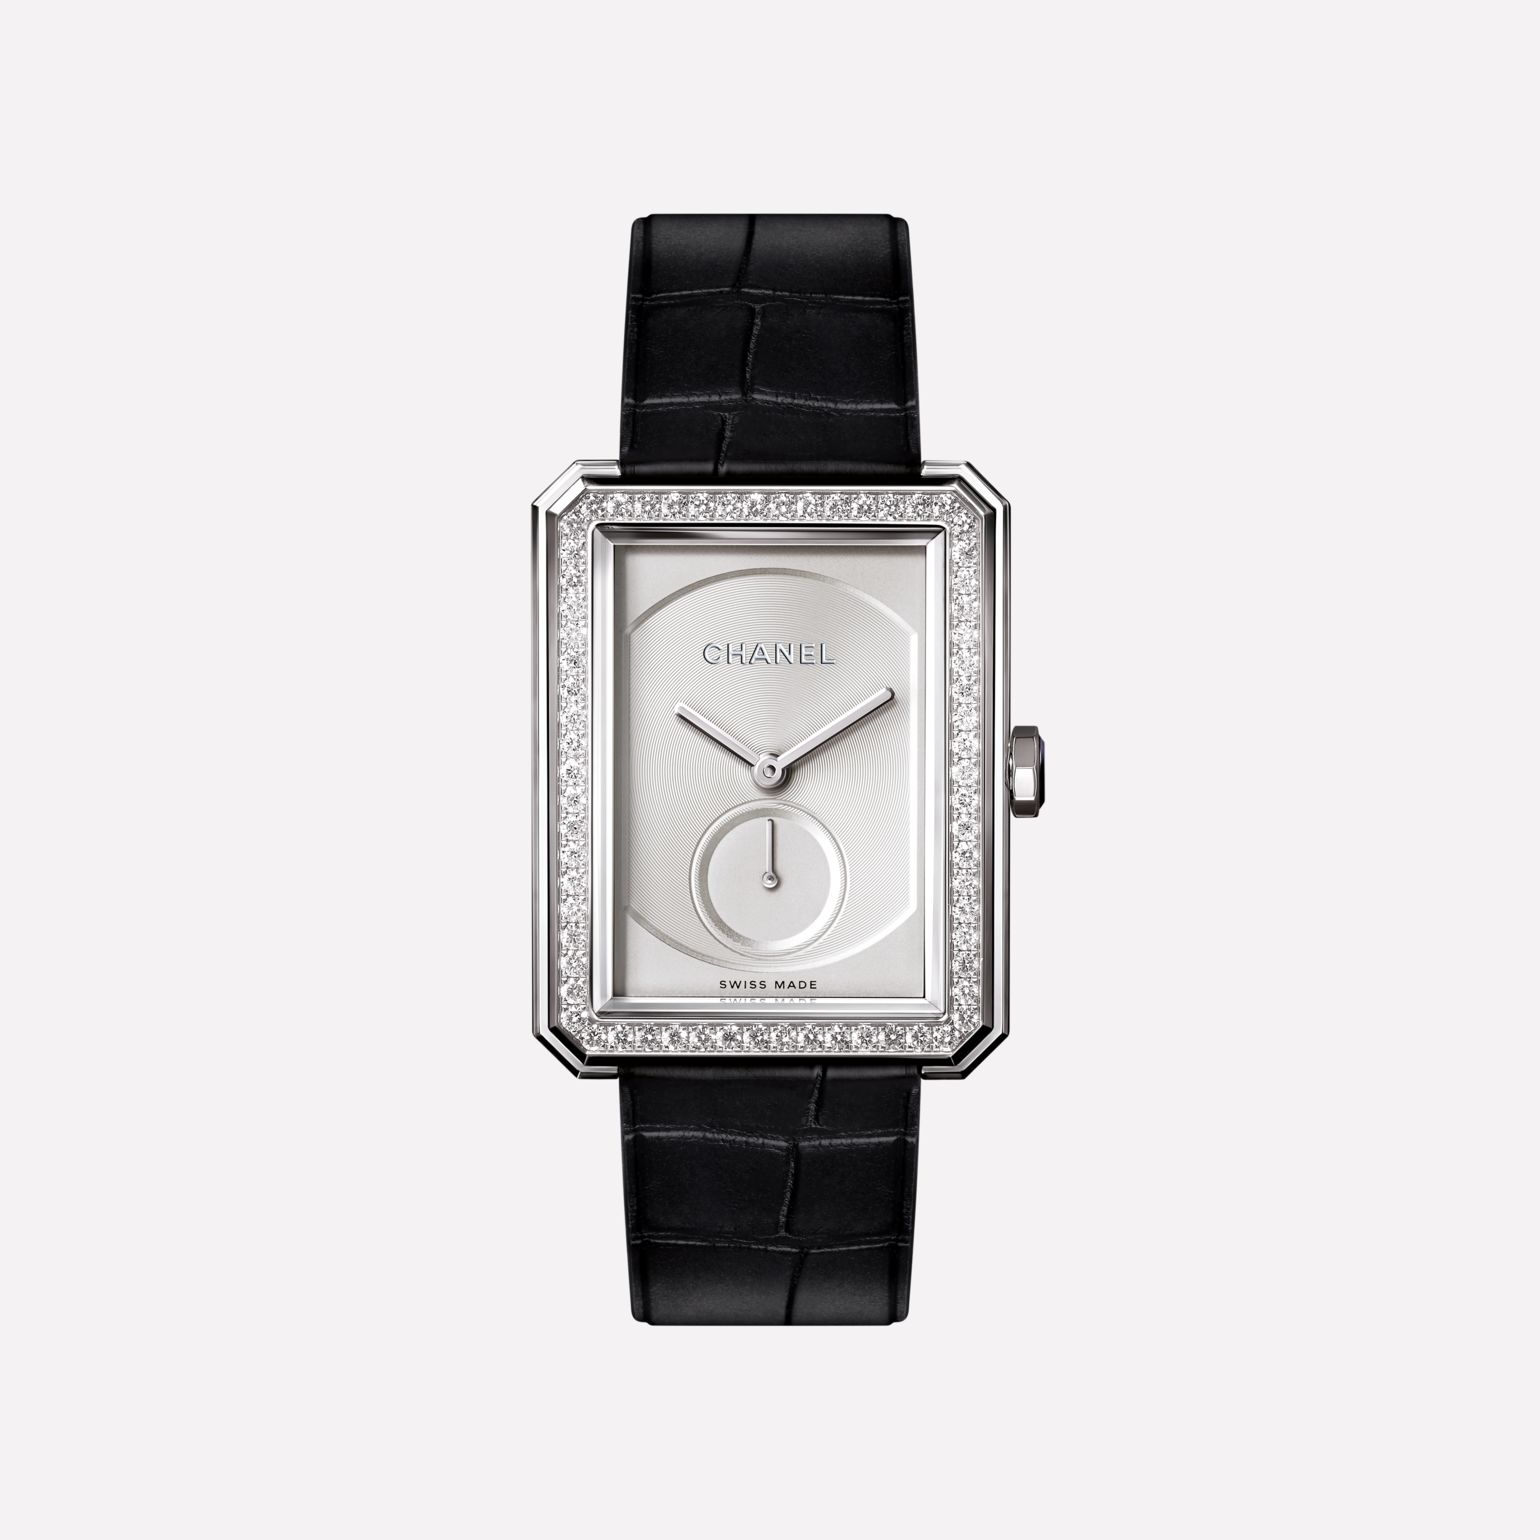 PREMIÈRE∙BOY DE CHANEL Large version, white gold set with diamonds and alligator strap